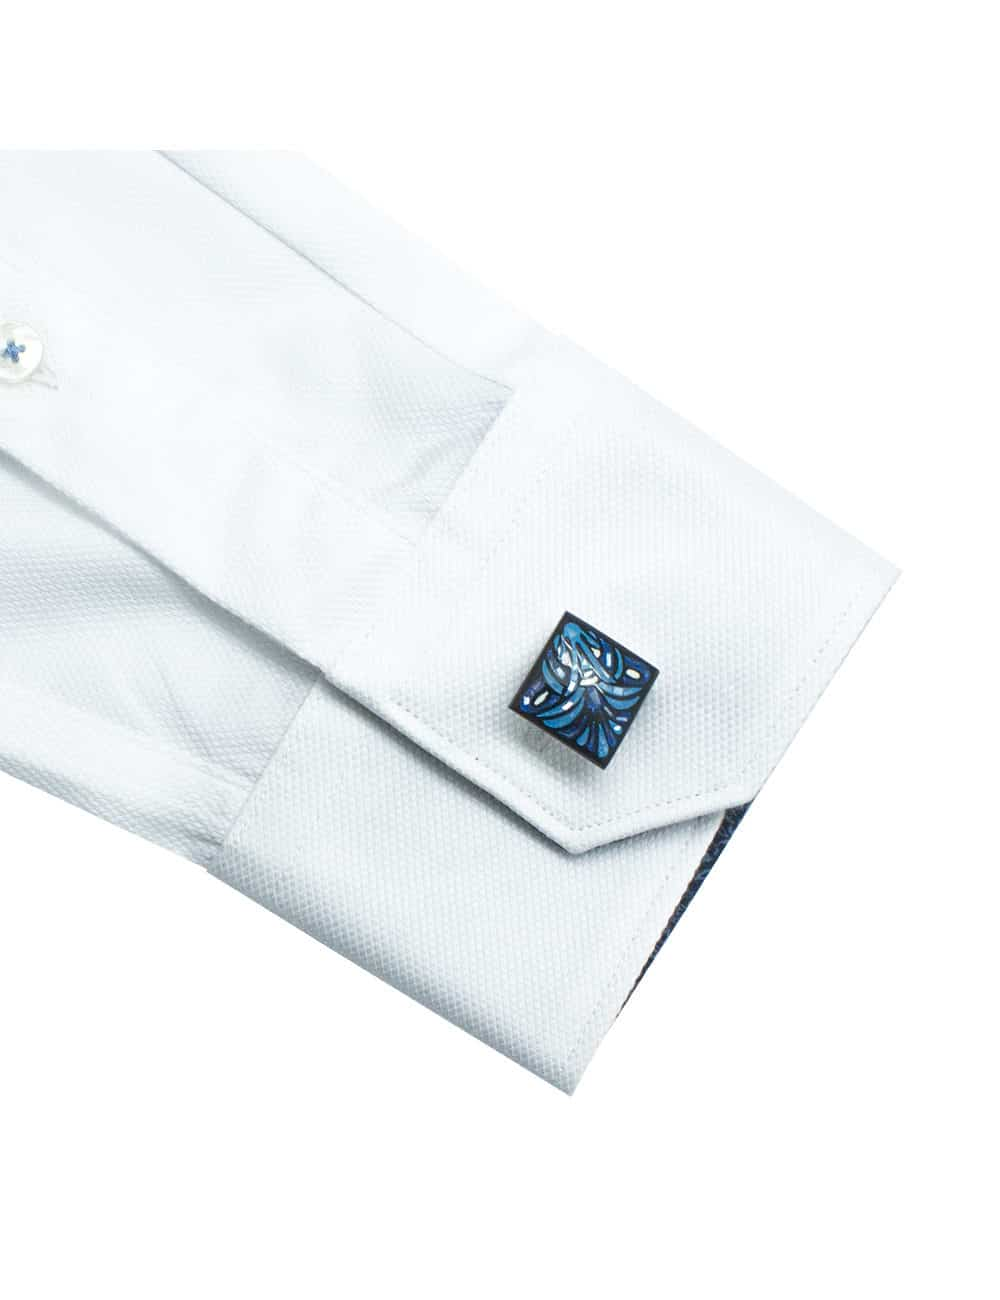 Solid White Double Ply Pima Cotton Shirt - TF2A1.18